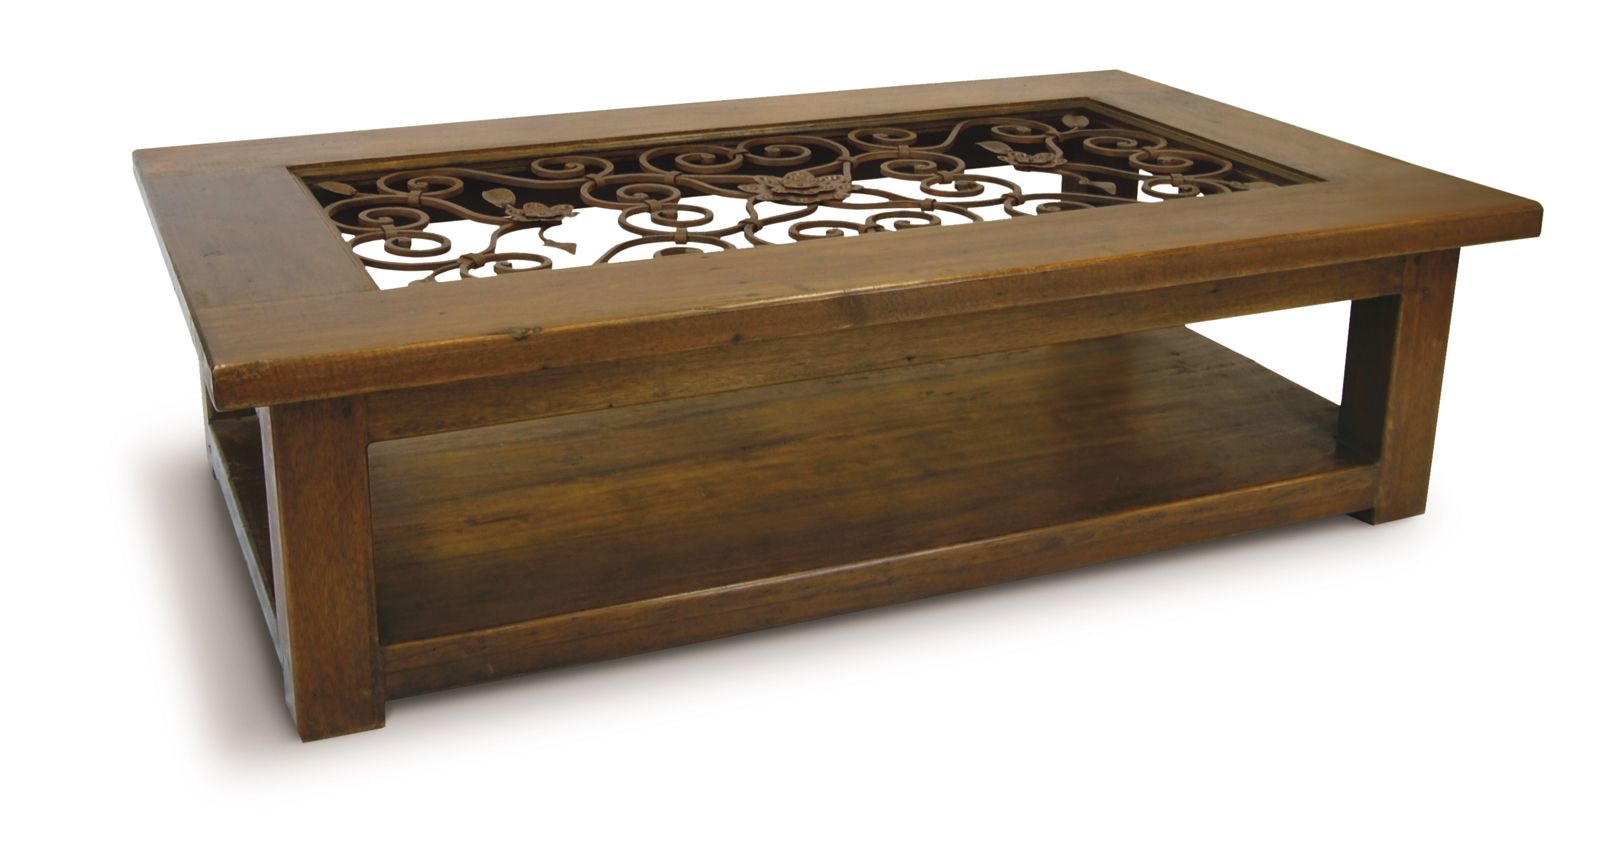 Coffee Table With Jali Design Coffee Table Traditional Coffee Table Coffee Table Rectangle [ 863 x 1600 Pixel ]